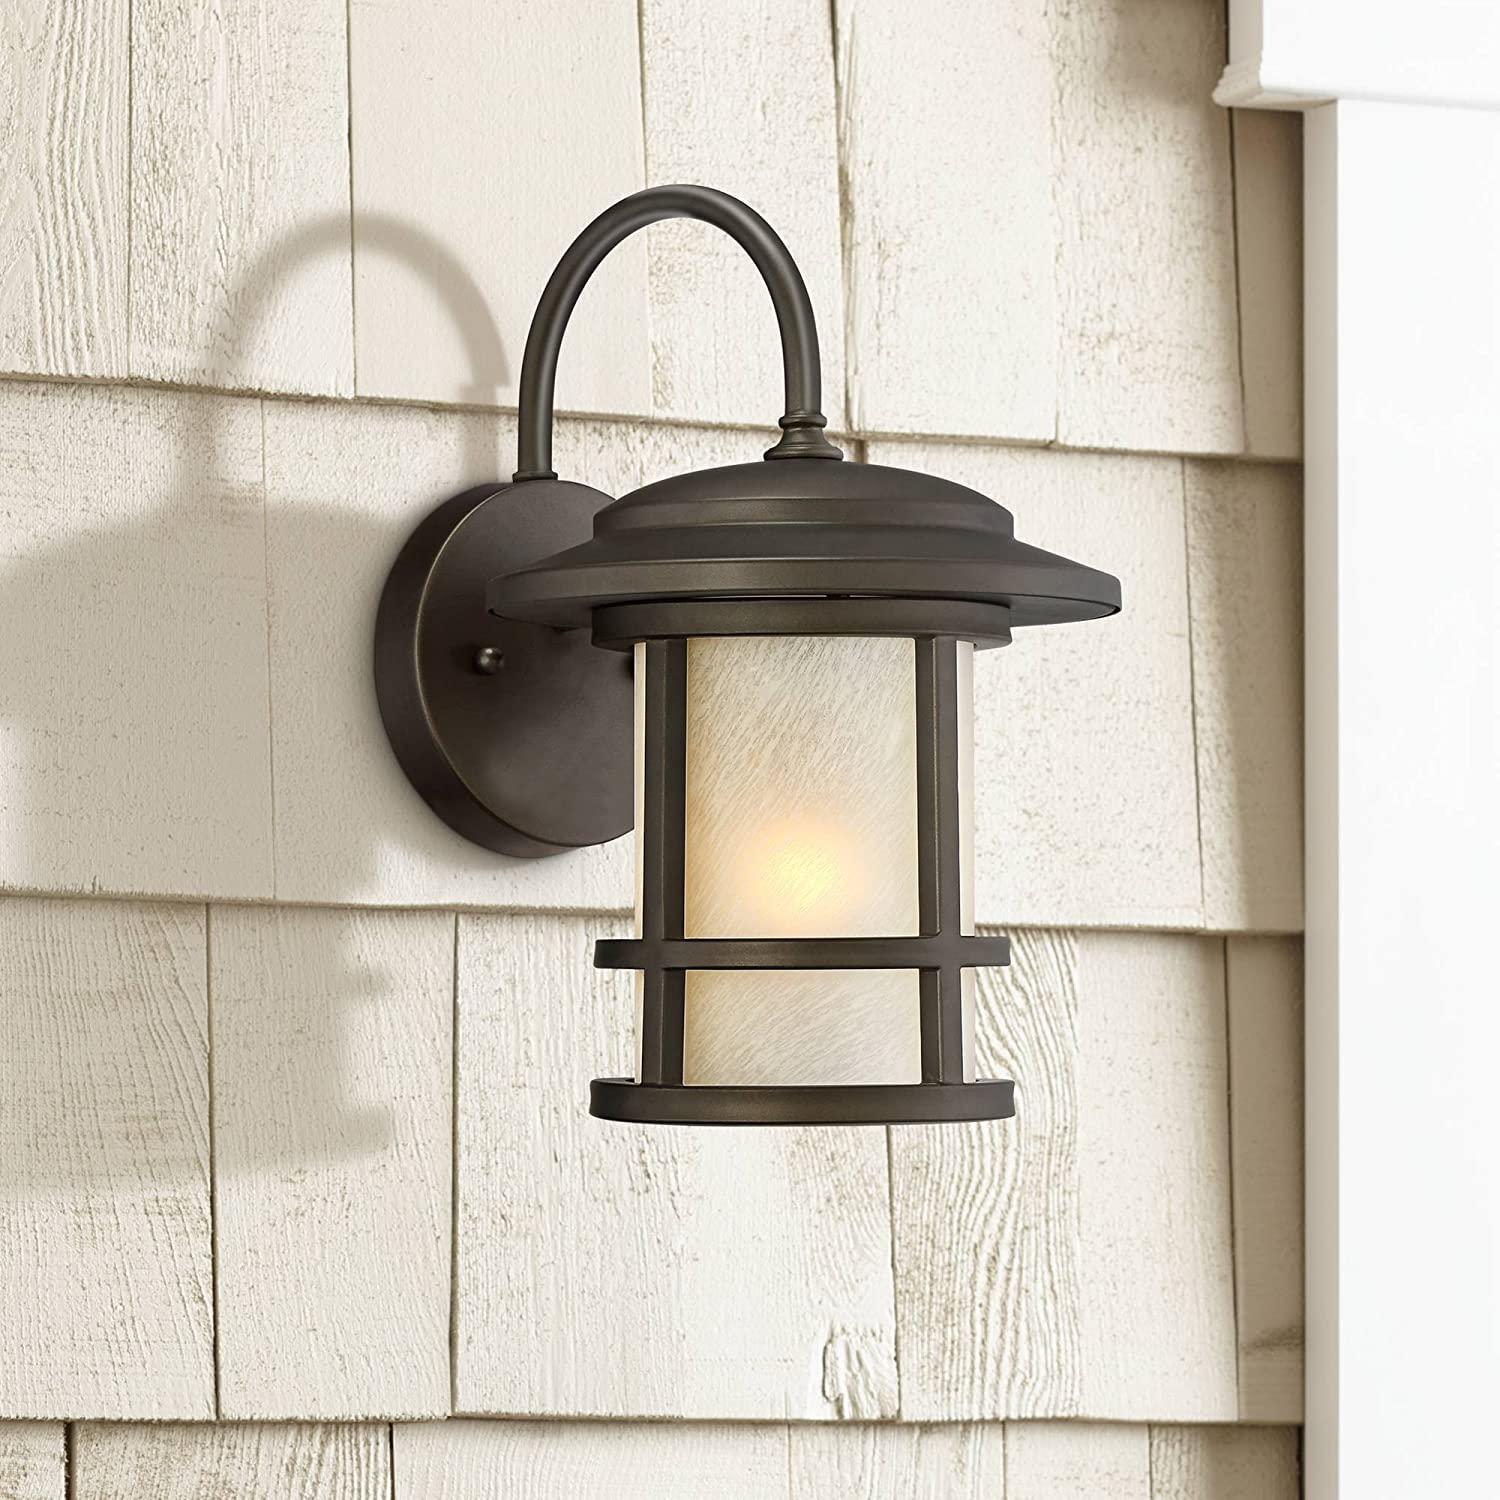 Special price Cressona Mission Outdoor Wall Light Oil Dark Rubbed Bron Fixture Attention brand